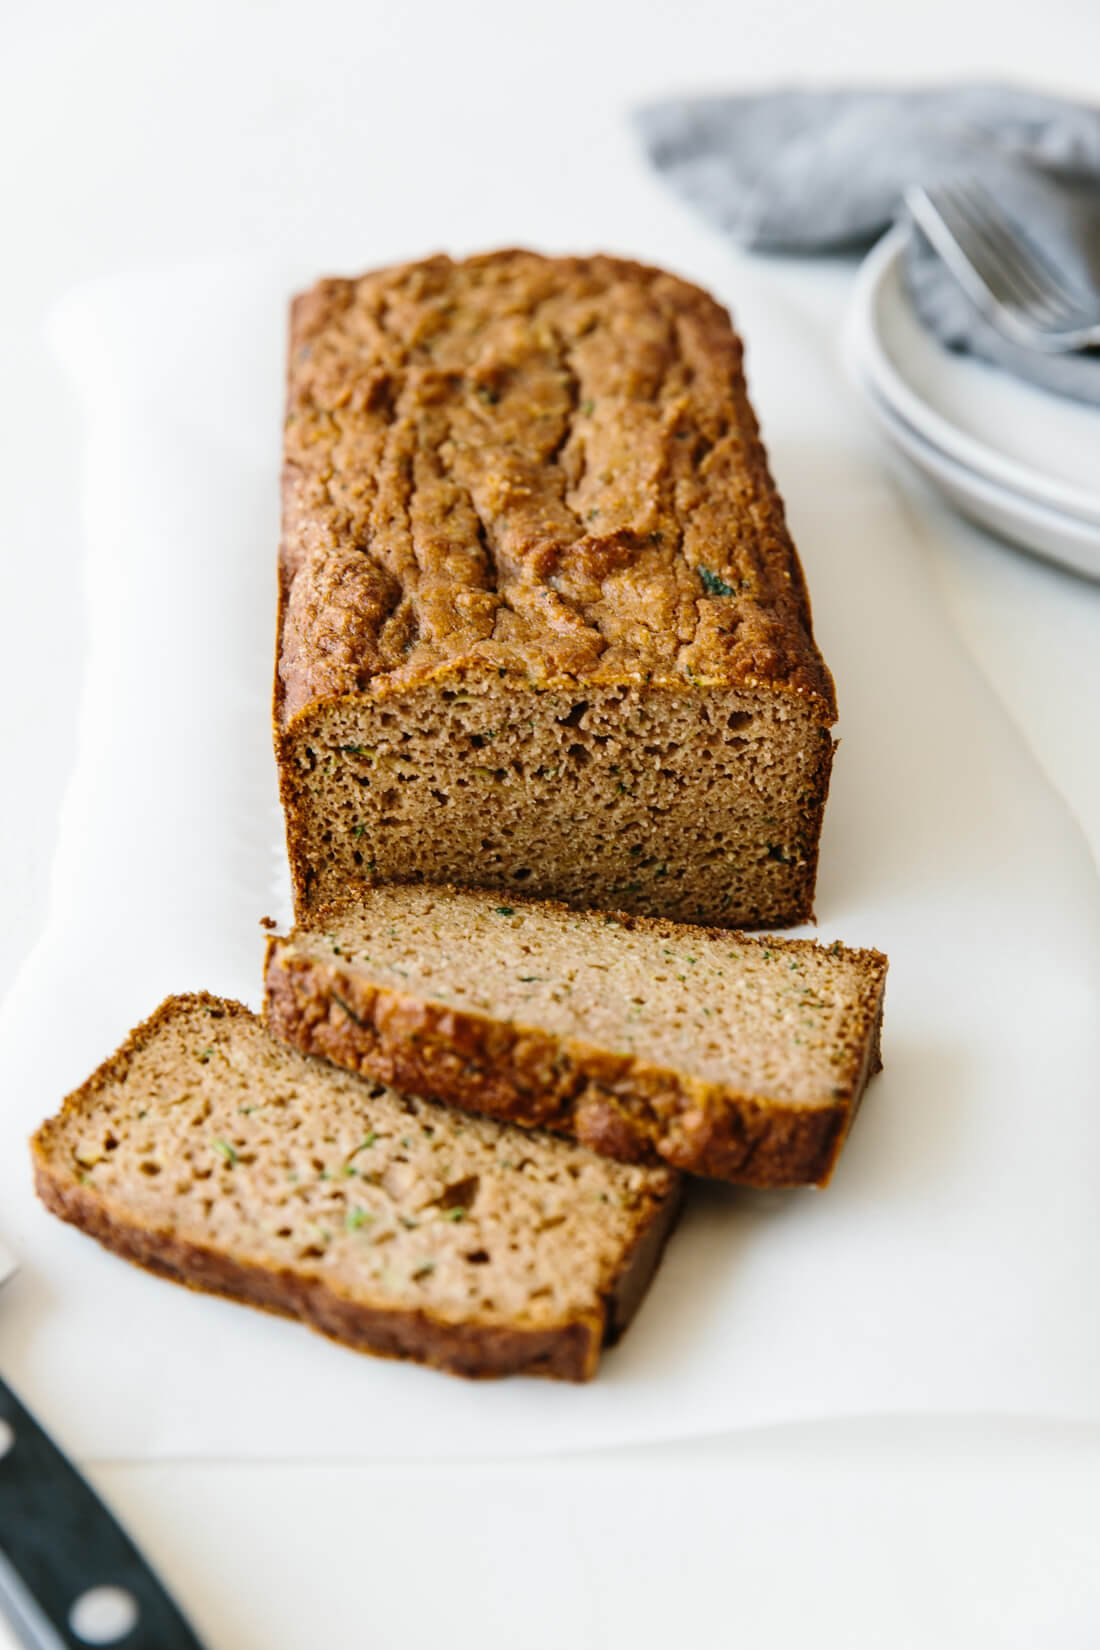 This super moist paleo zucchini bread recipe is made with almond flour, tapioca flour and coconut flour. It's gluten-free, grain-free, dairy-free and extremely delicious.